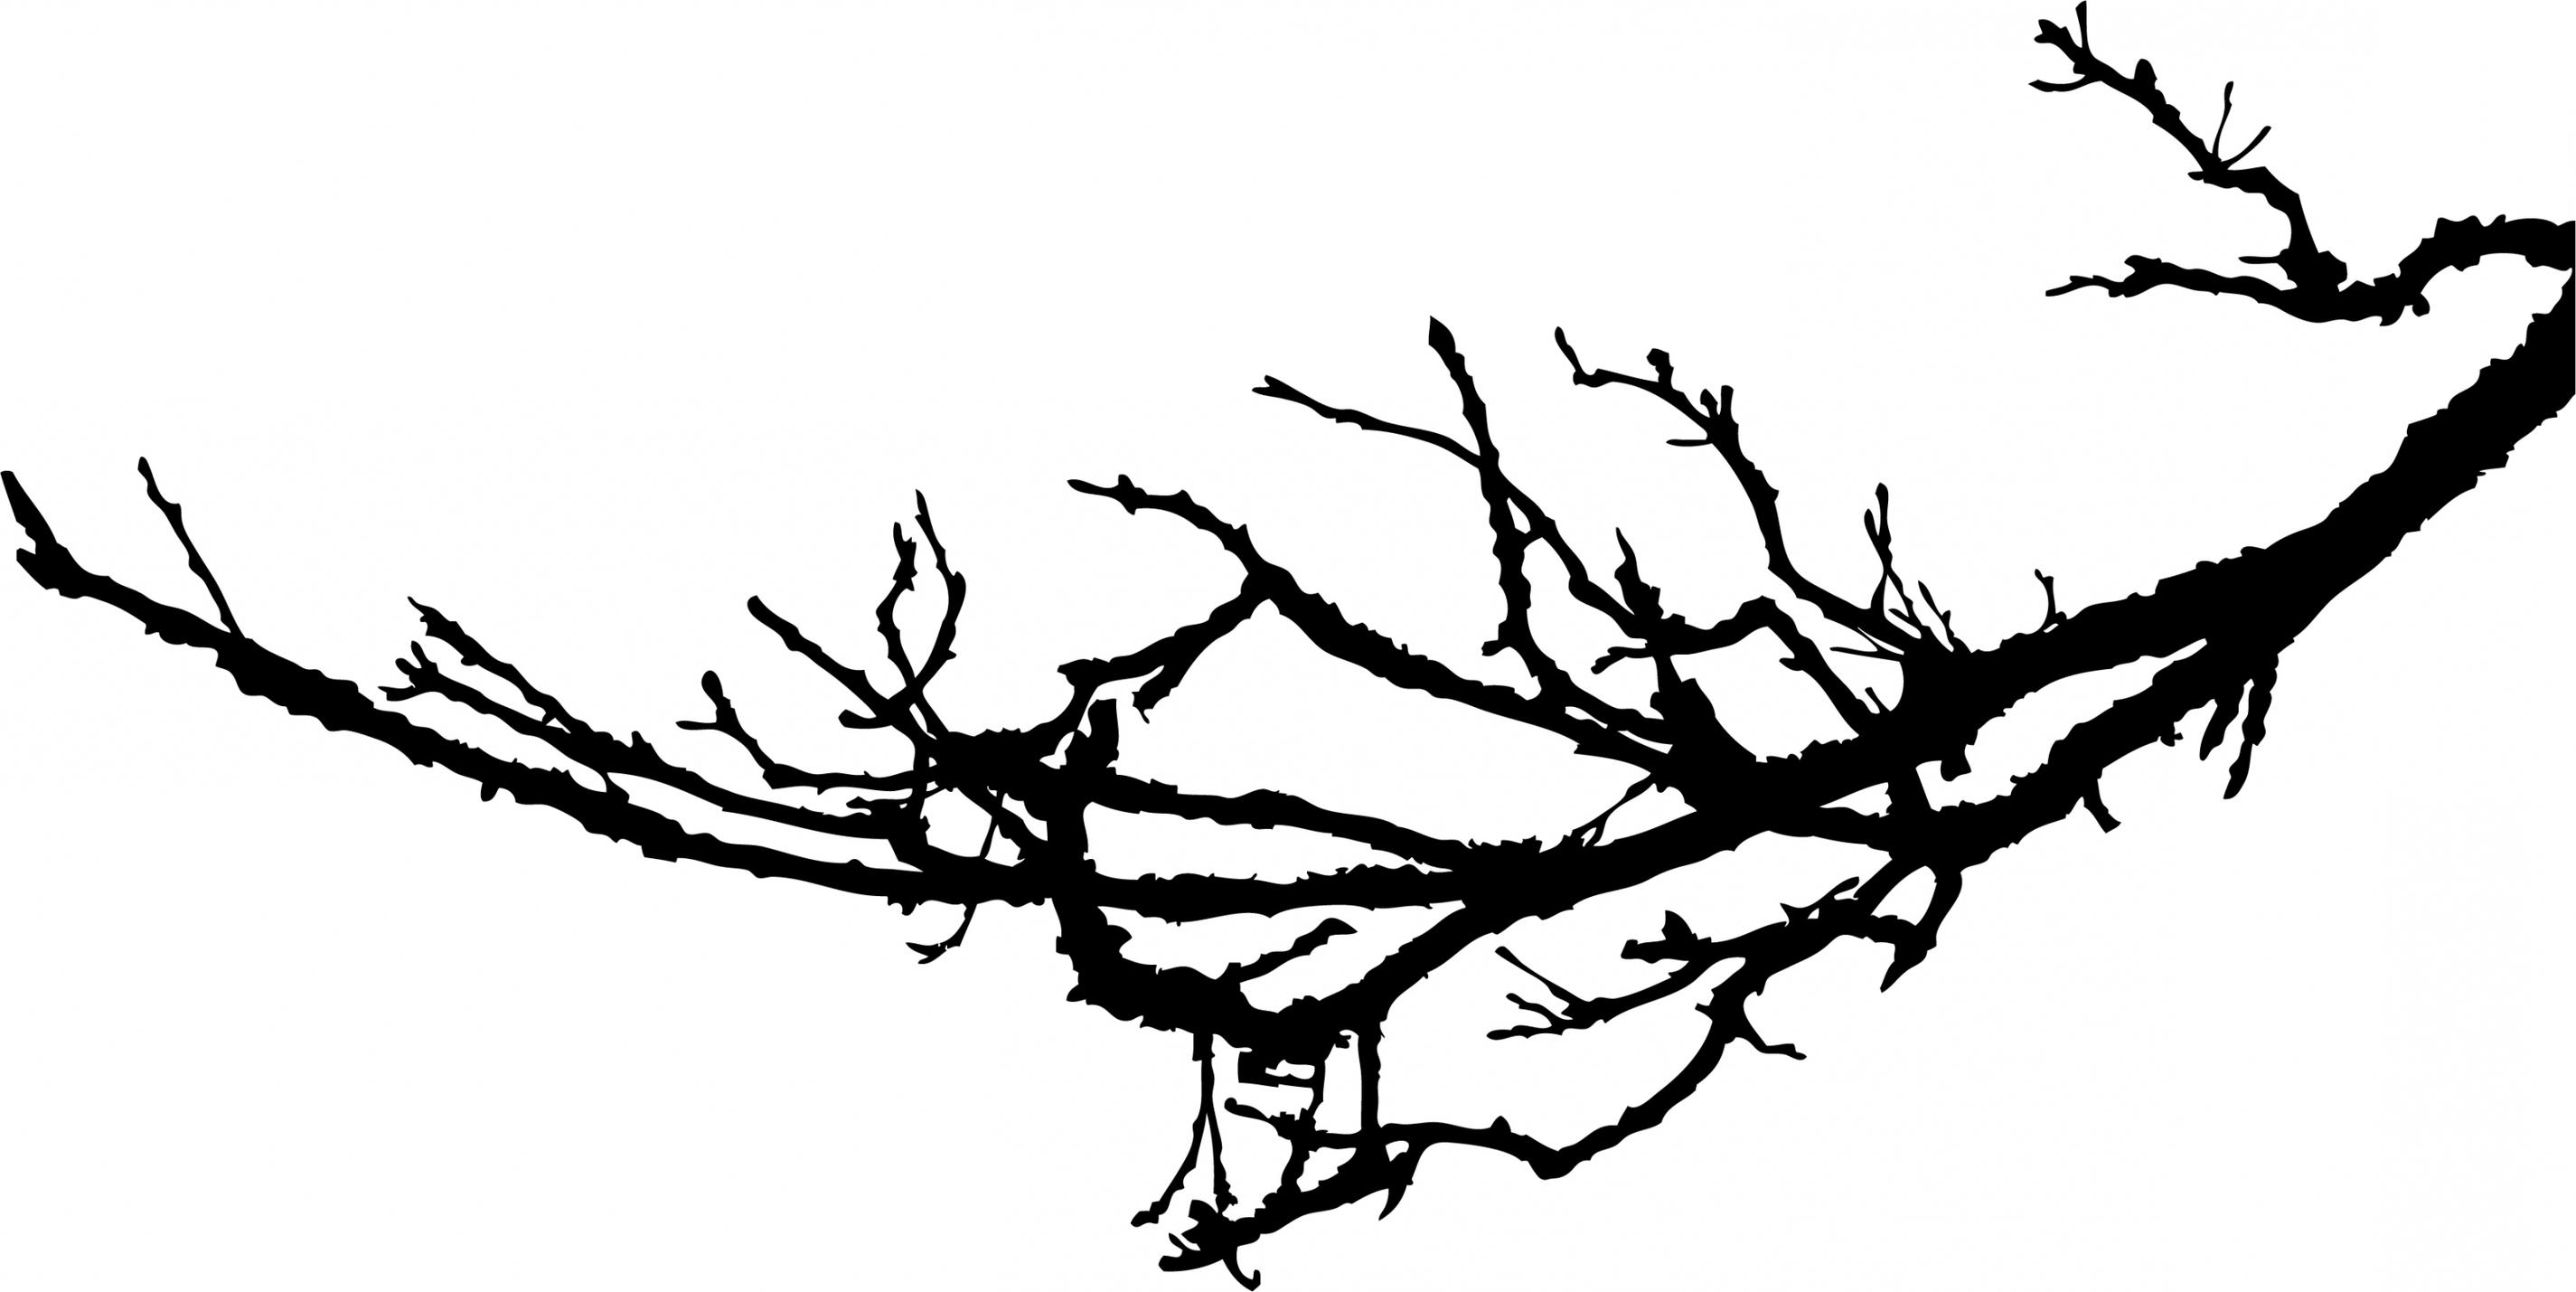 2850x1429 Best HD Tree Branch Silhouette Clip Art Photos » Free Vector Art